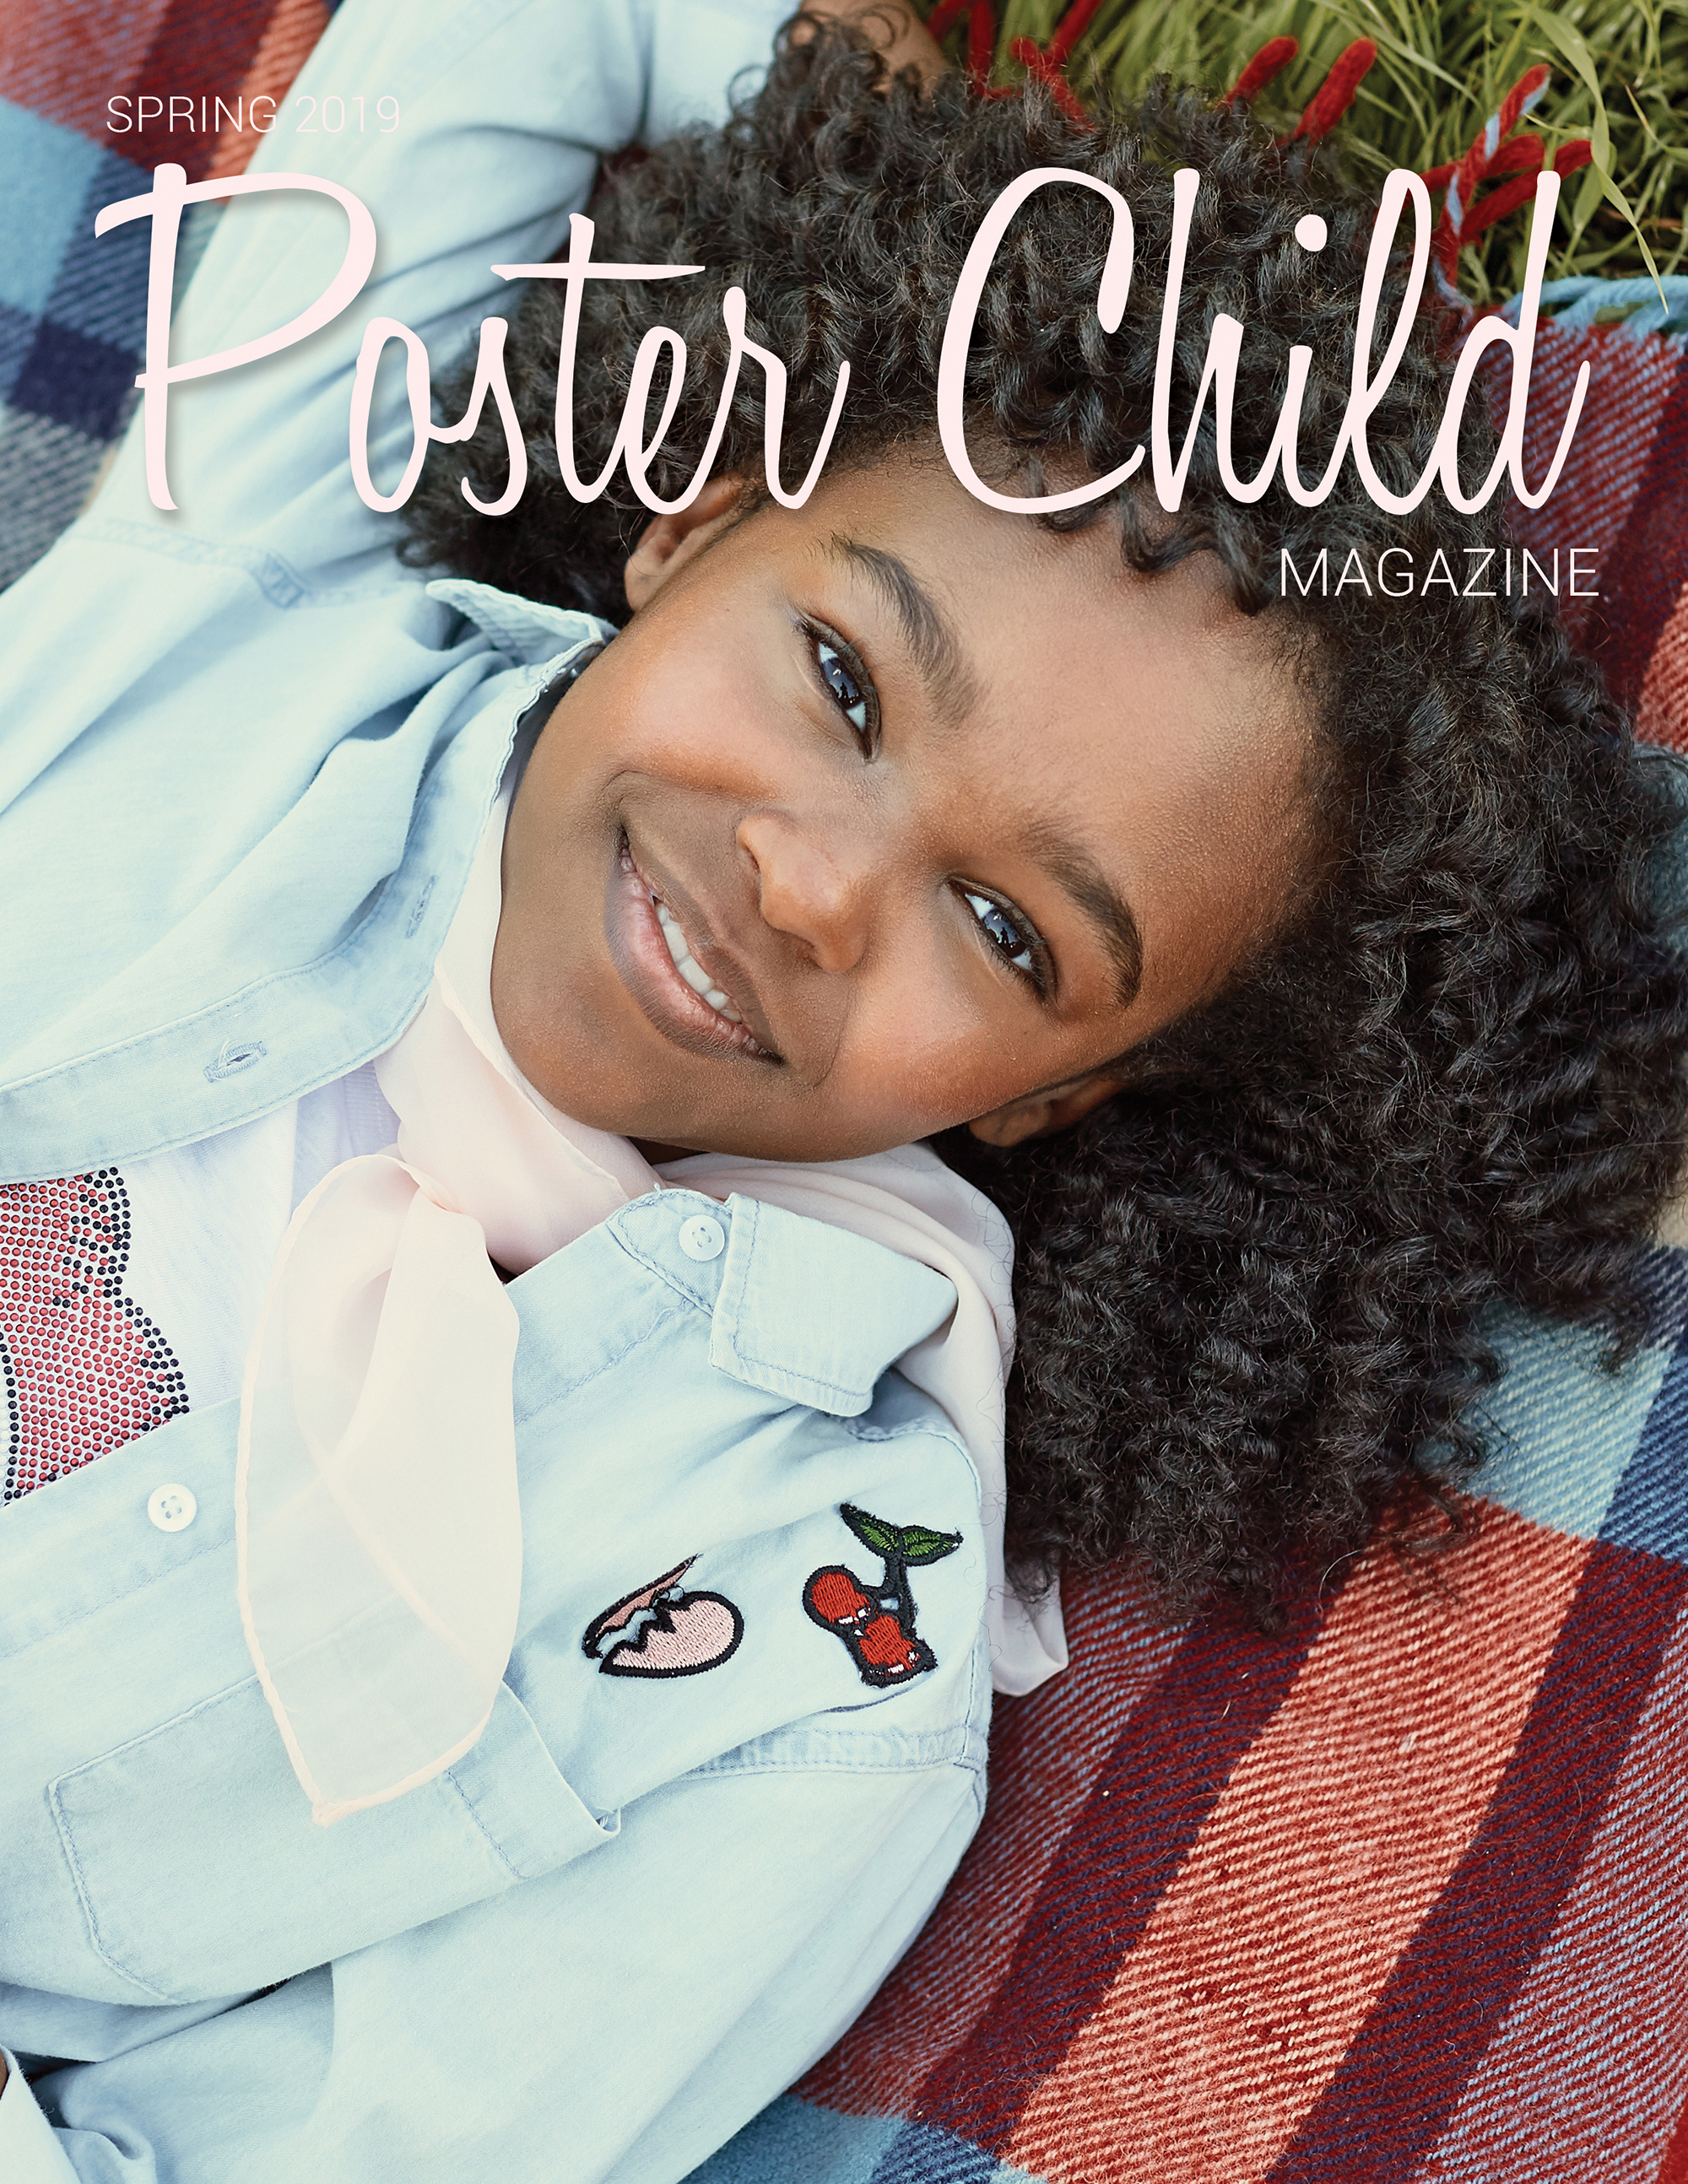 Posterchild magazine cover of actress Lidya Jewett photographed by Ryan Pavlovich